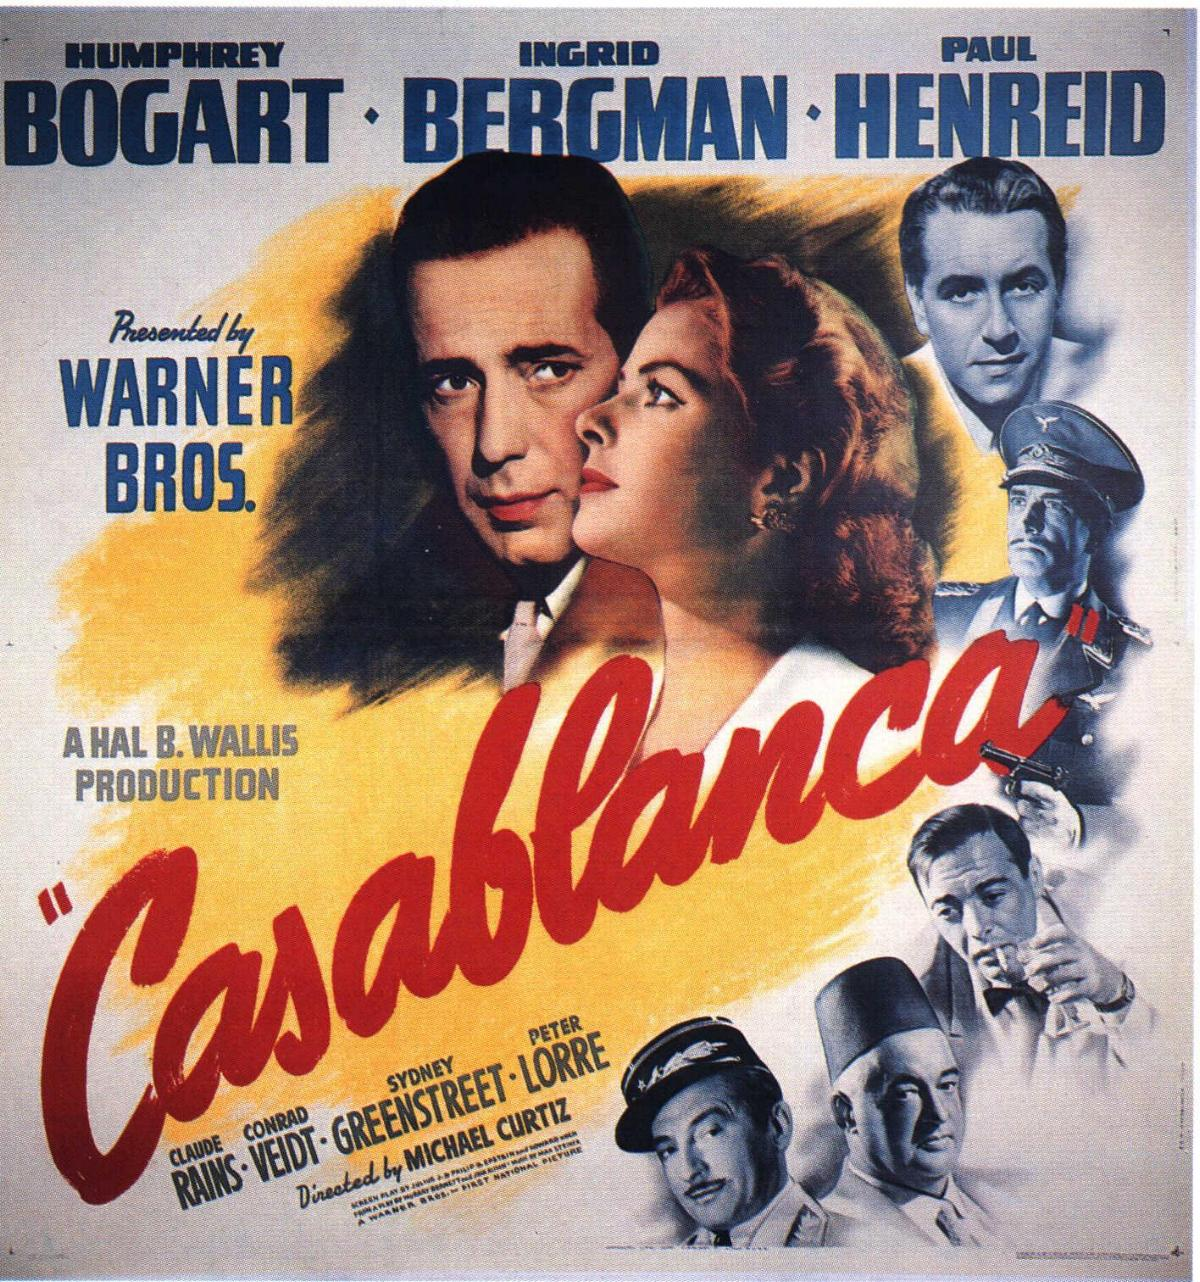 empire 39 s 5 star 500 my movie reviews 090 casablanca 1942